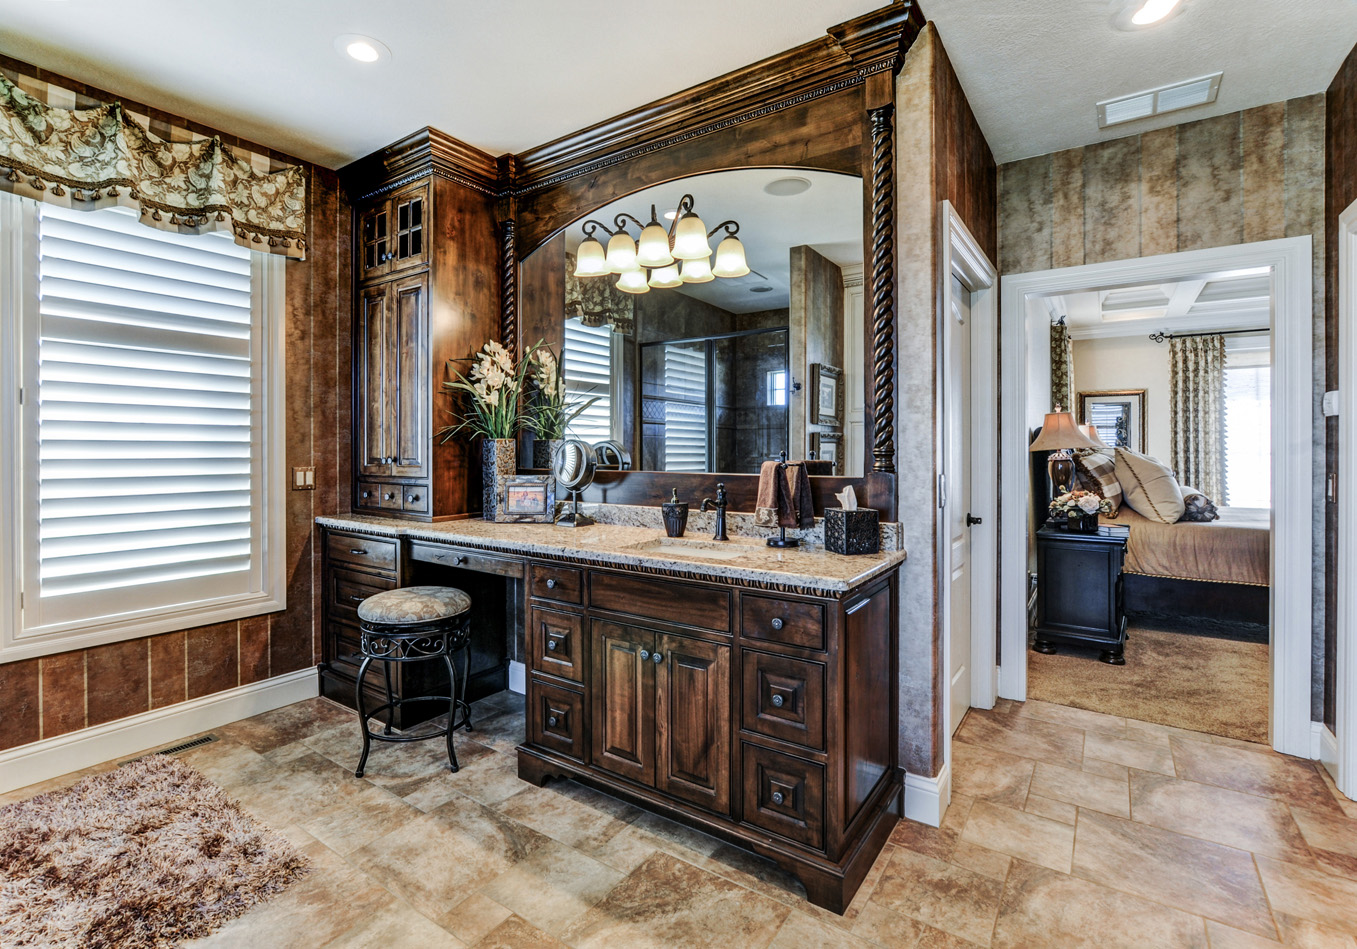 built-by-brett-custom-home-springfield-mo-13735-lawrence-2100-025.jpg